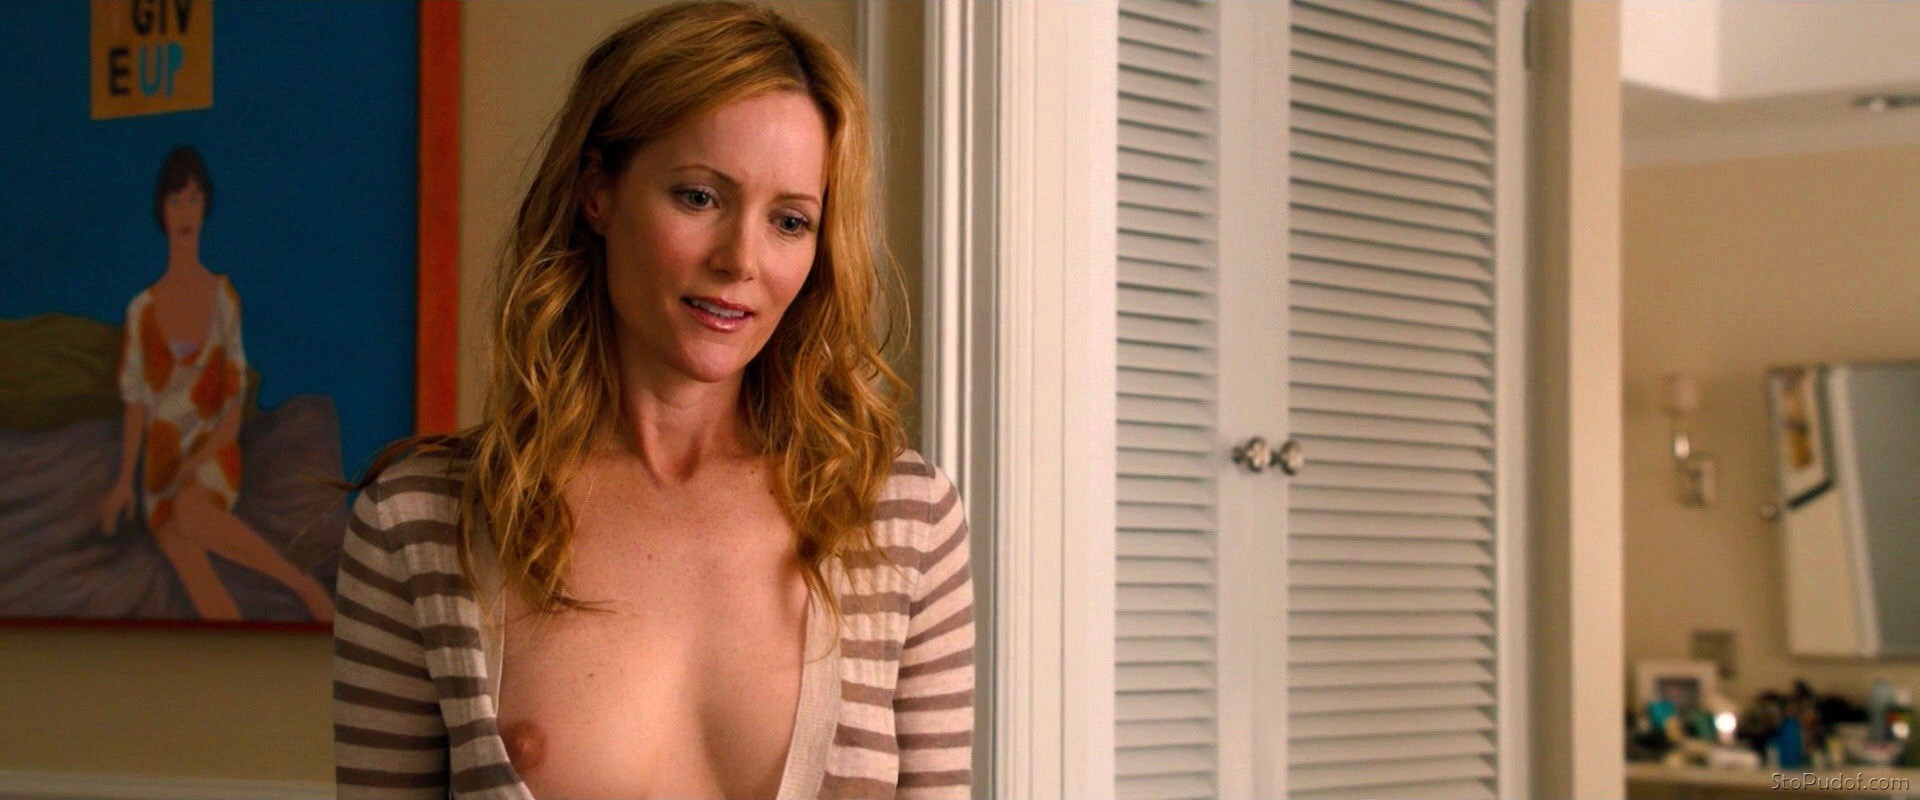 see pictures of Leslie Mann nude - UkPhotoSafari